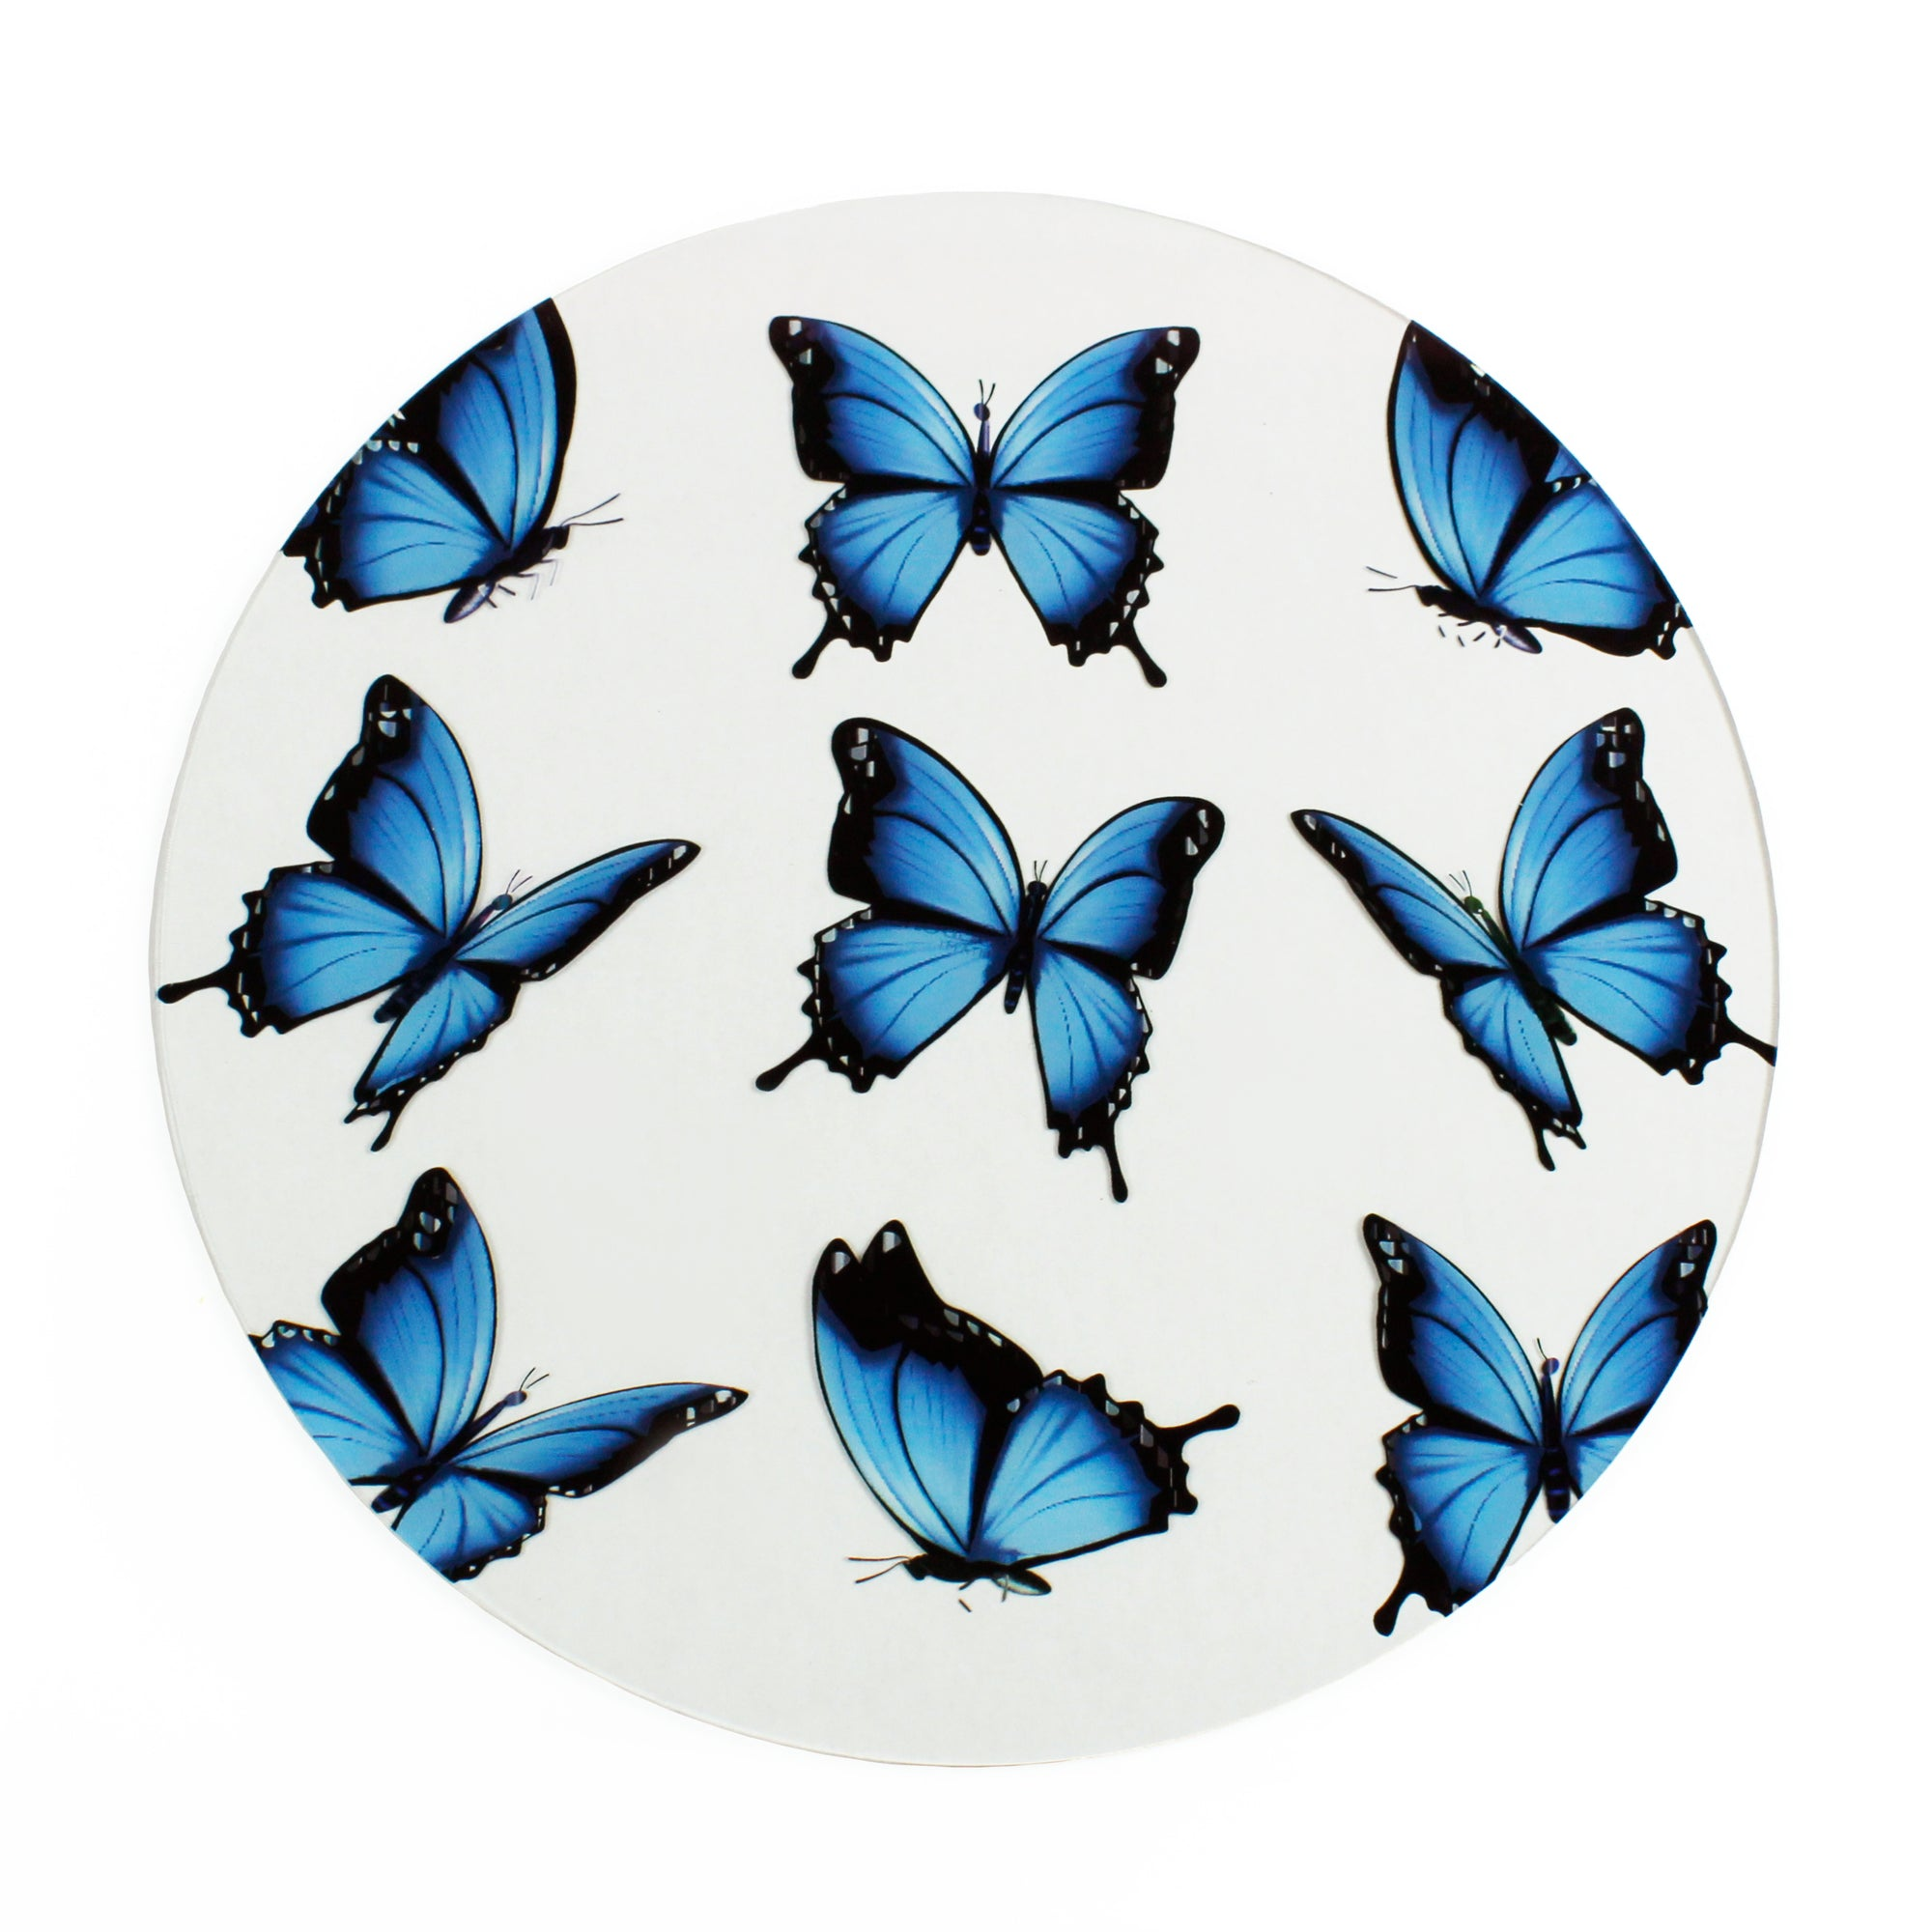 Placemats - Butterfly Effect